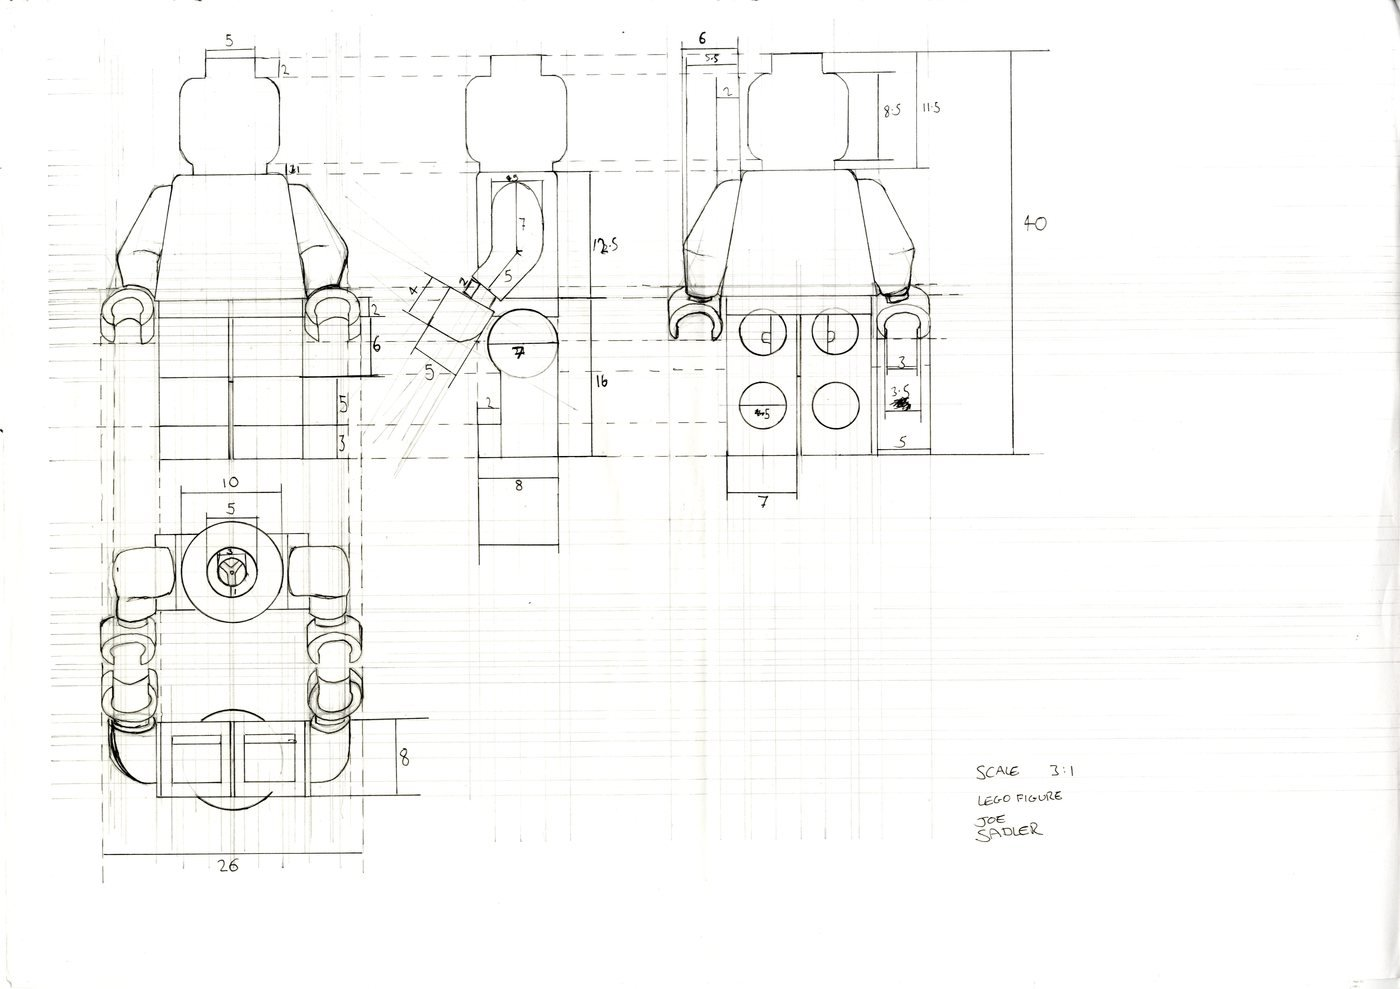 cad and technical drawing by joseph sadler at coroflot com